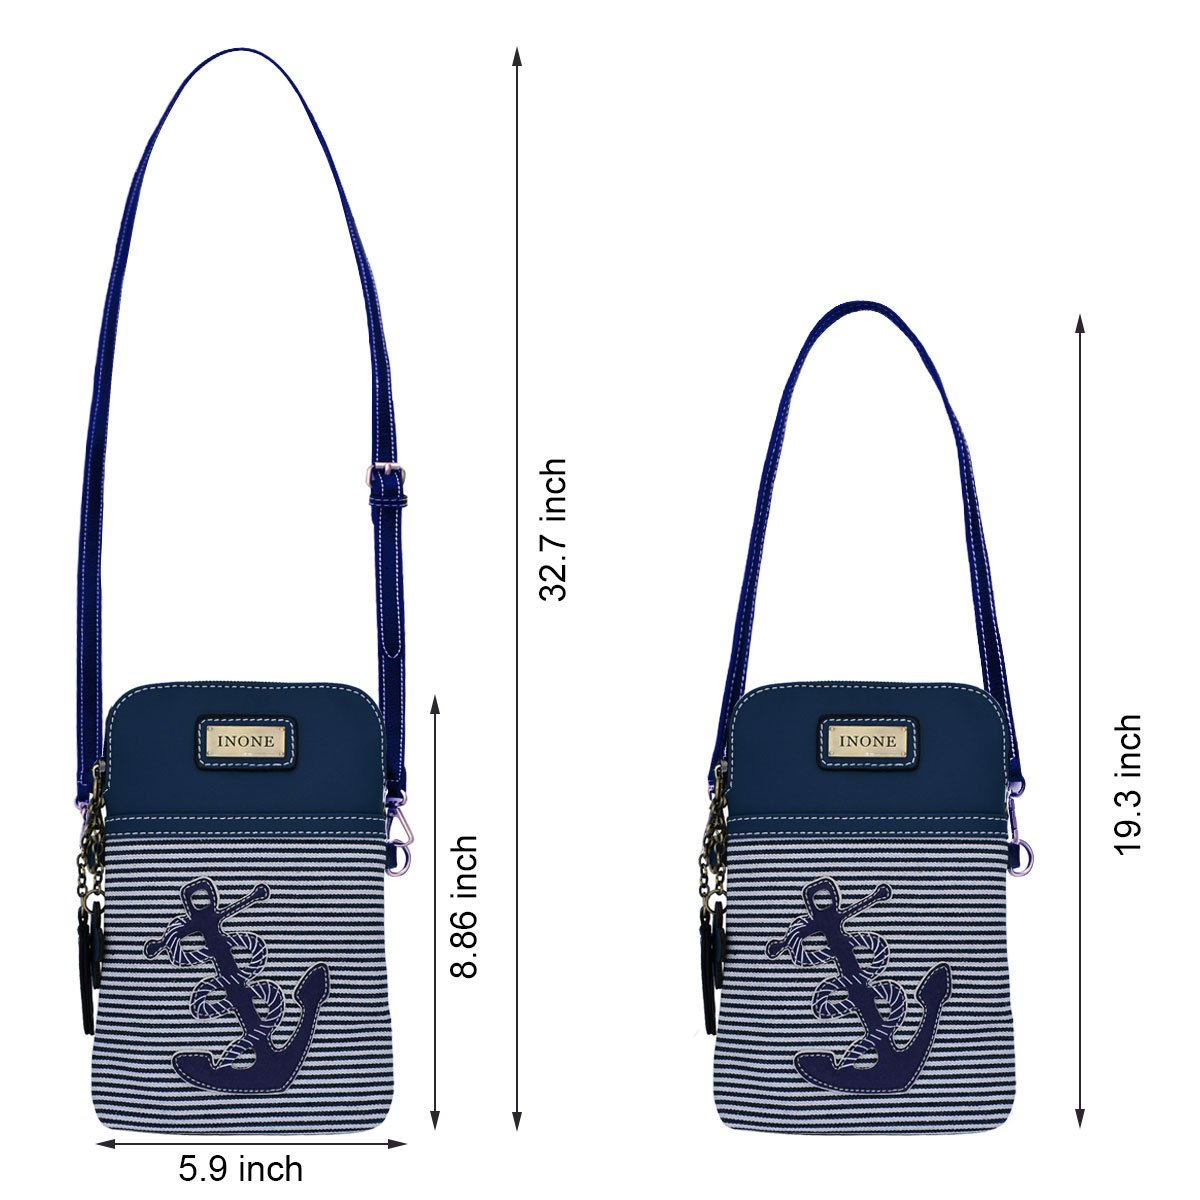 Anchor Crossbody Bag Nautical iPhone Cell Phone Purse Bag PU Leather Canvas Handbag for Smartphone Credit Card Passport Keys by inOne (Image #7)